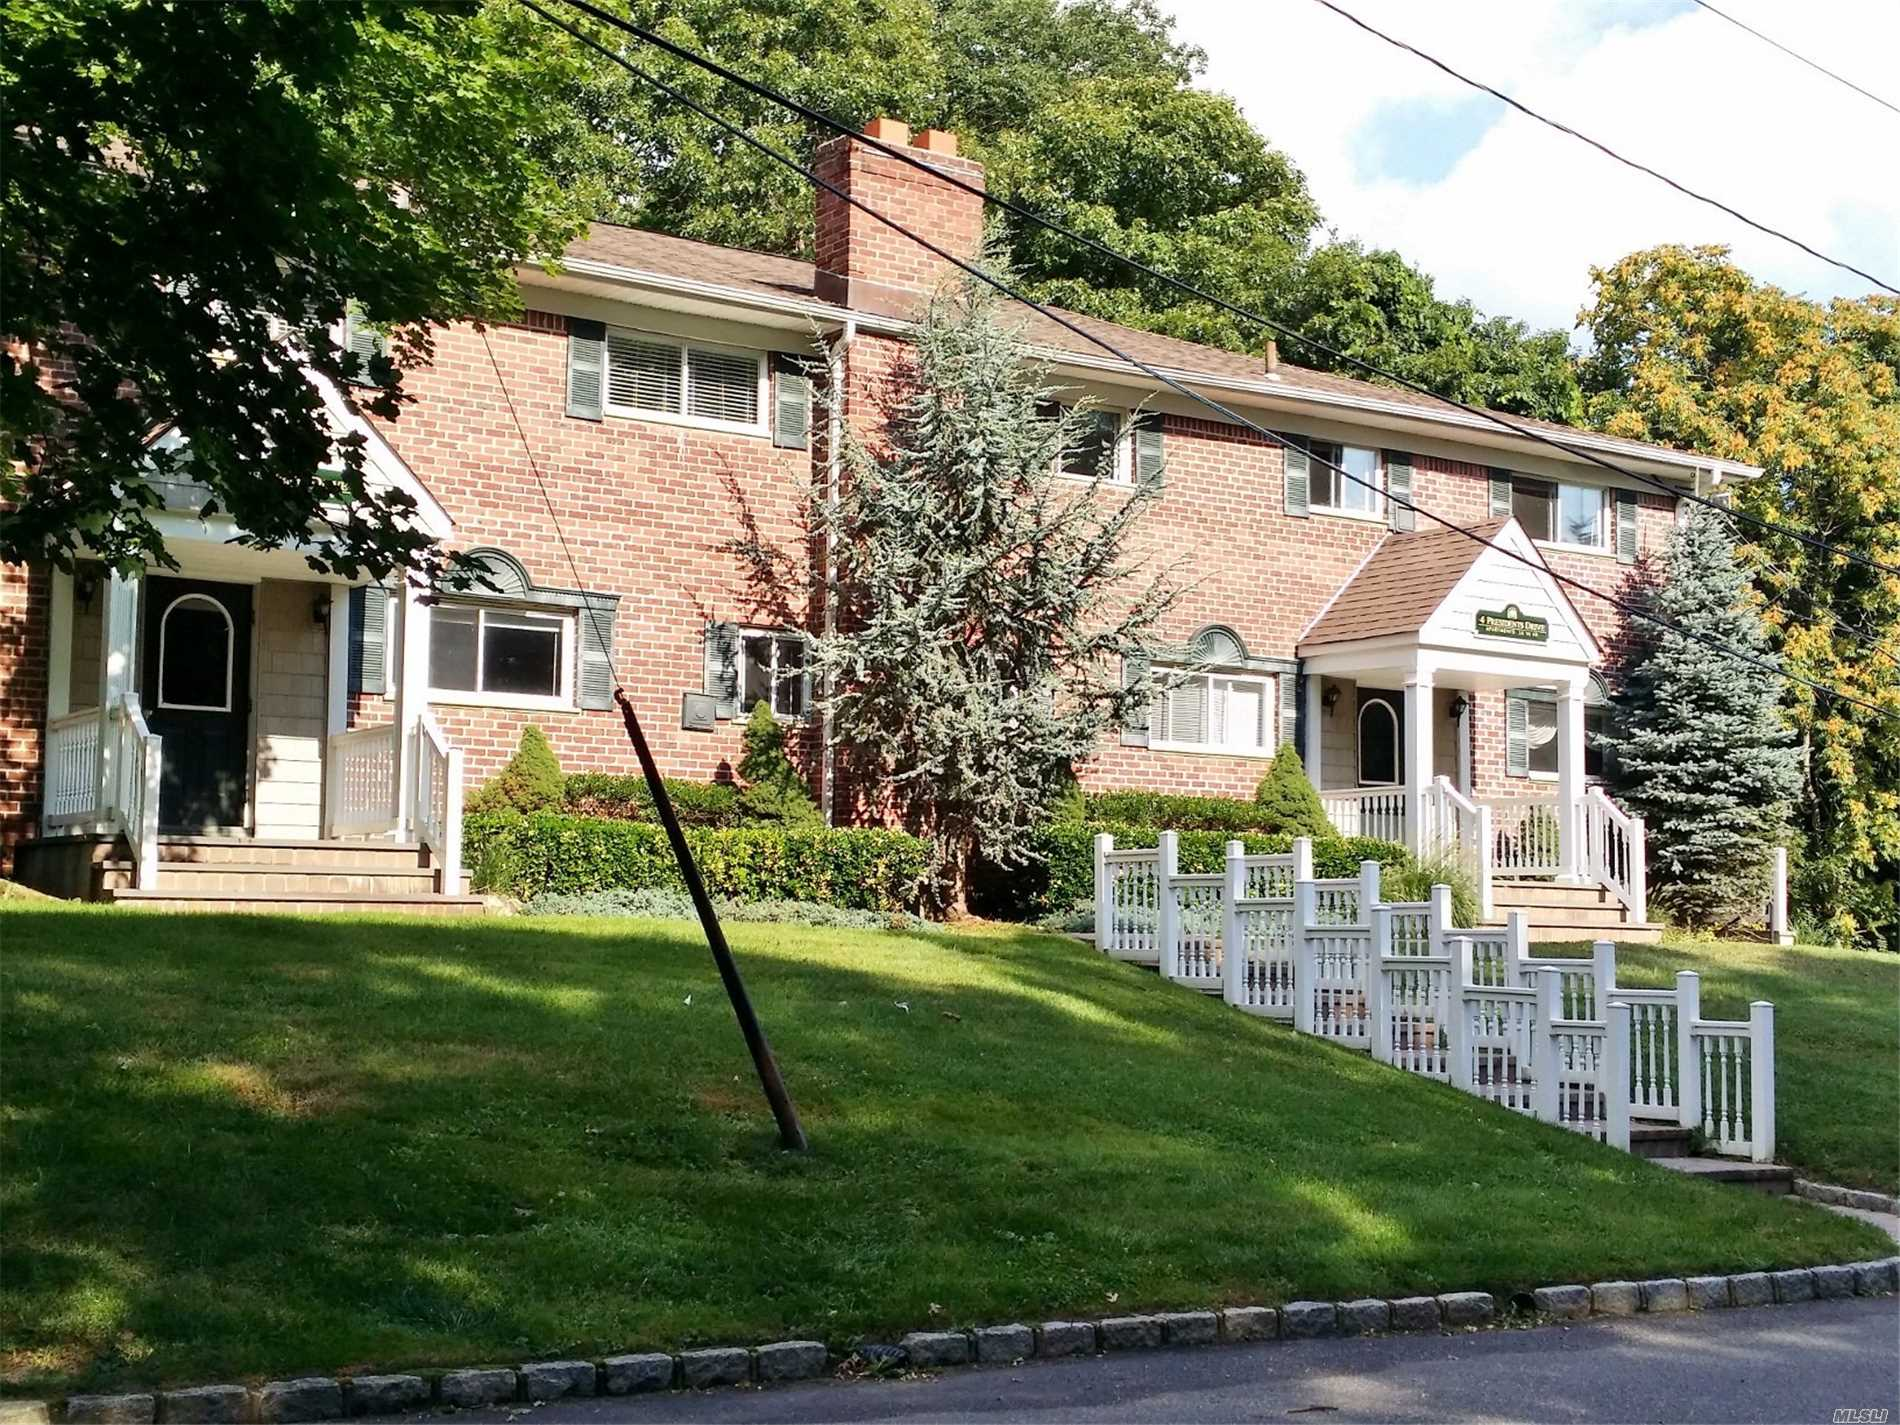 Located Upon A Hilltop W/A Waterfall Entrance This Serene Location Is In Perfect Reach To The Port Jefferson Harbor Village. Spacious 1&2 Bedroom Apartments With Dining Area & Large Terraces. Many New Renovations Are Underway.Conv To Suny Stonybrook, Local Hospitals, Lirr, Shopping.